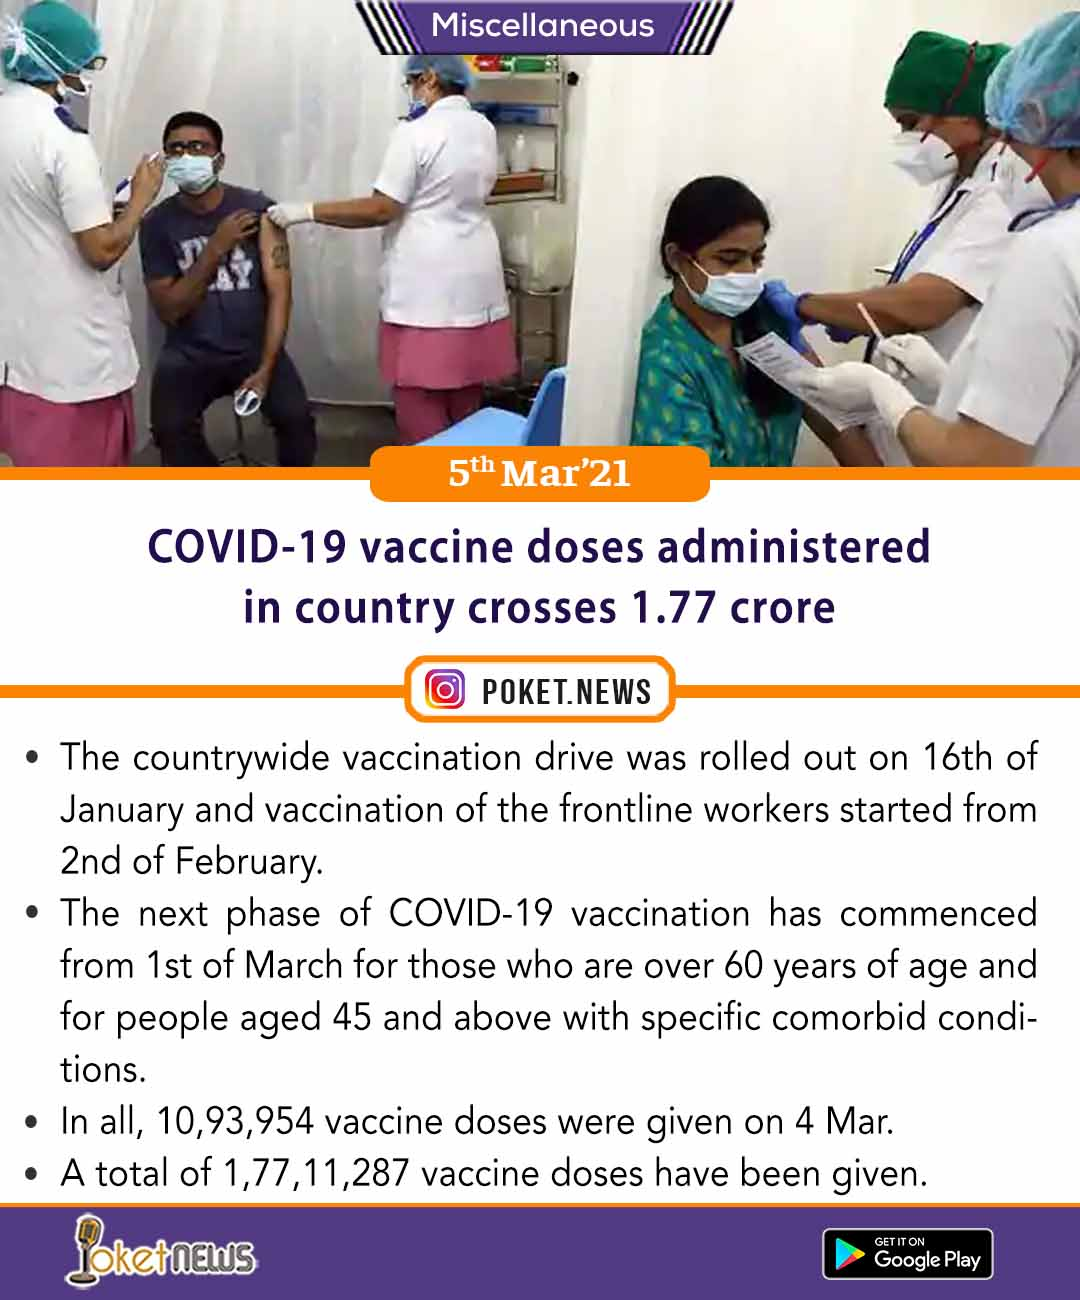 COVID-19 vaccine doses administered in country crosses 1.77 crore